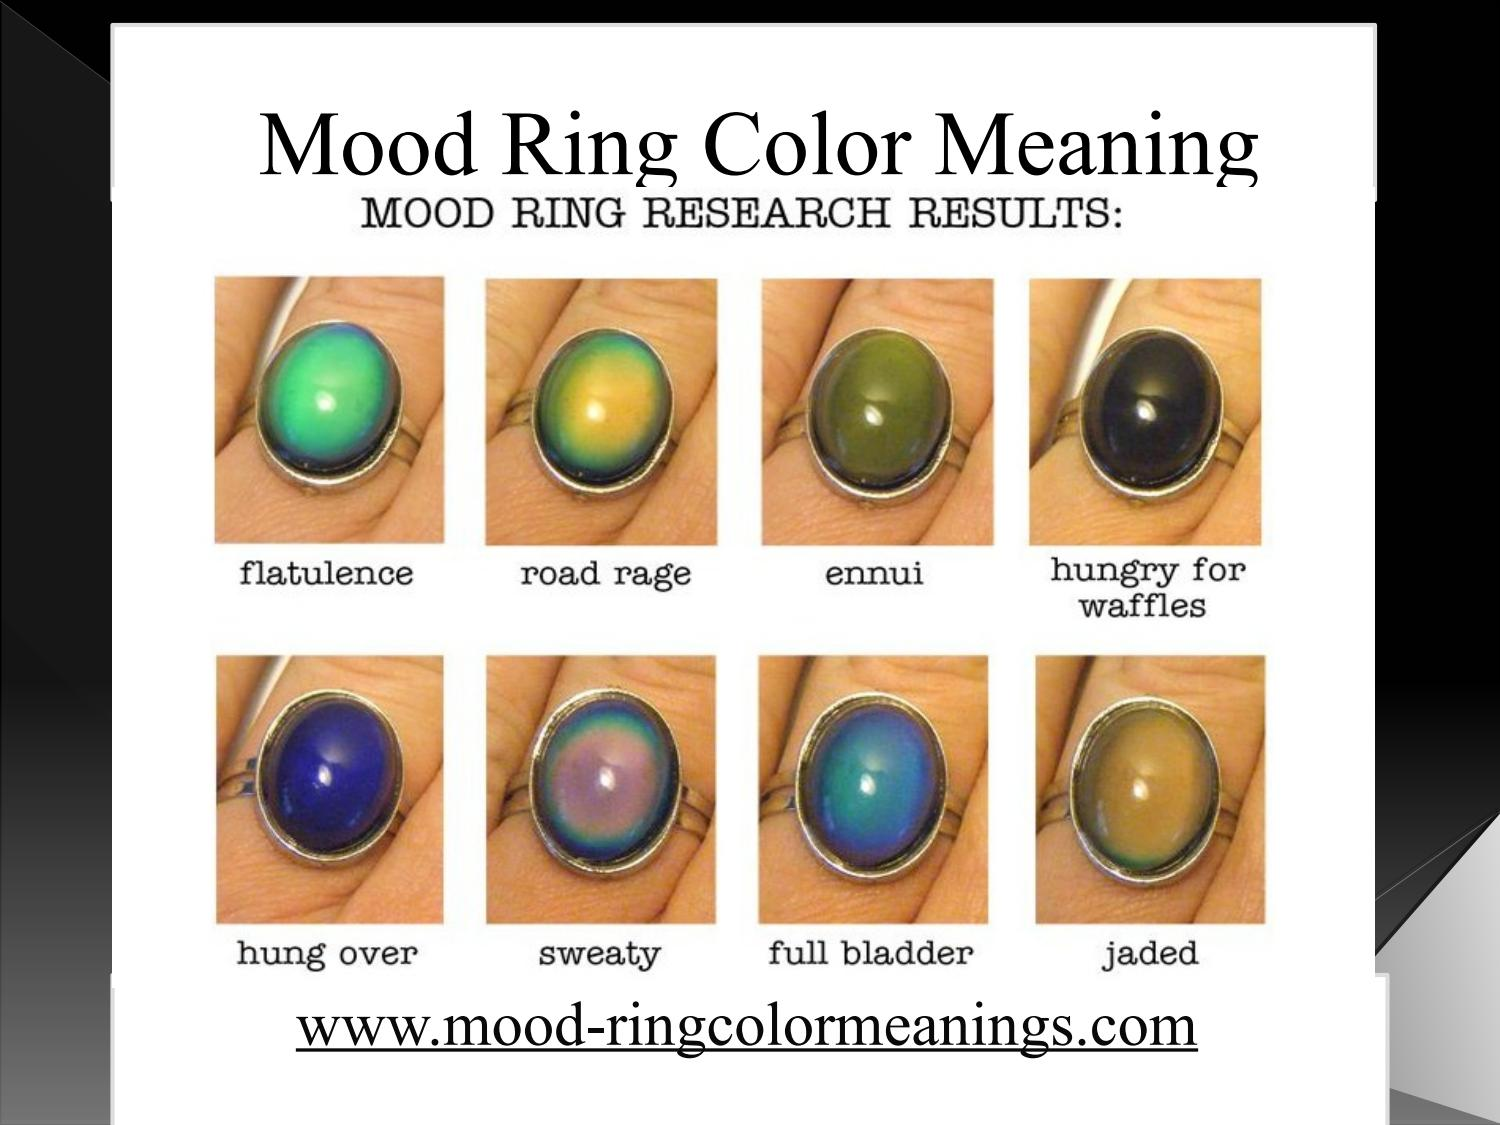 Mood ring color meaning by Mood Ring Color - Issuu